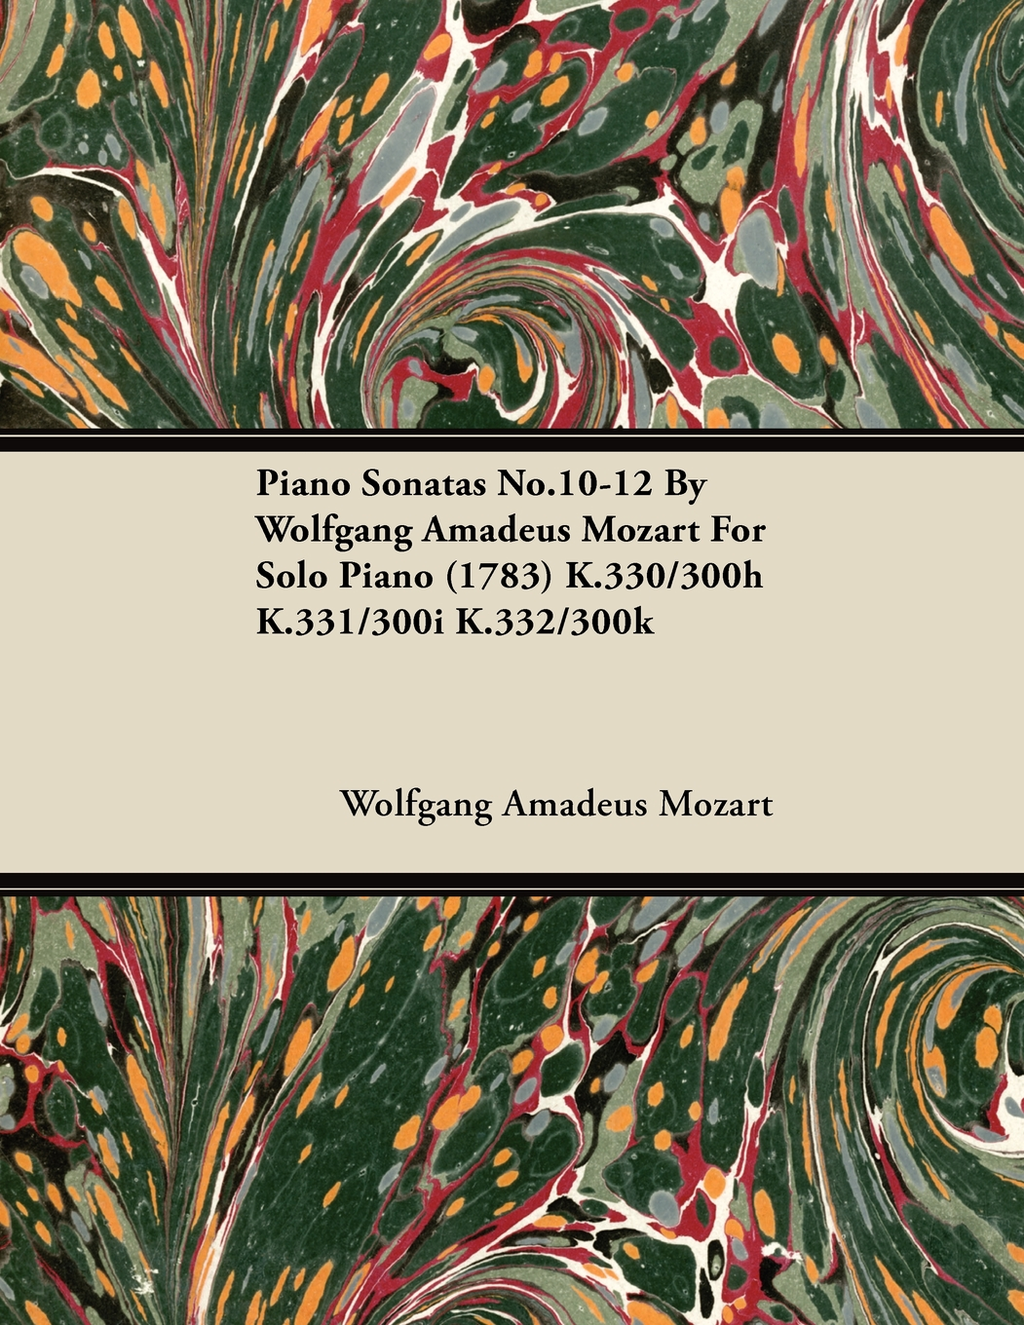 Piano Sonatas No.10-12 By Wolfgang Amadeus Mozart For Solo Piano (1783) K.330/300h K.331/300i K.332/300k